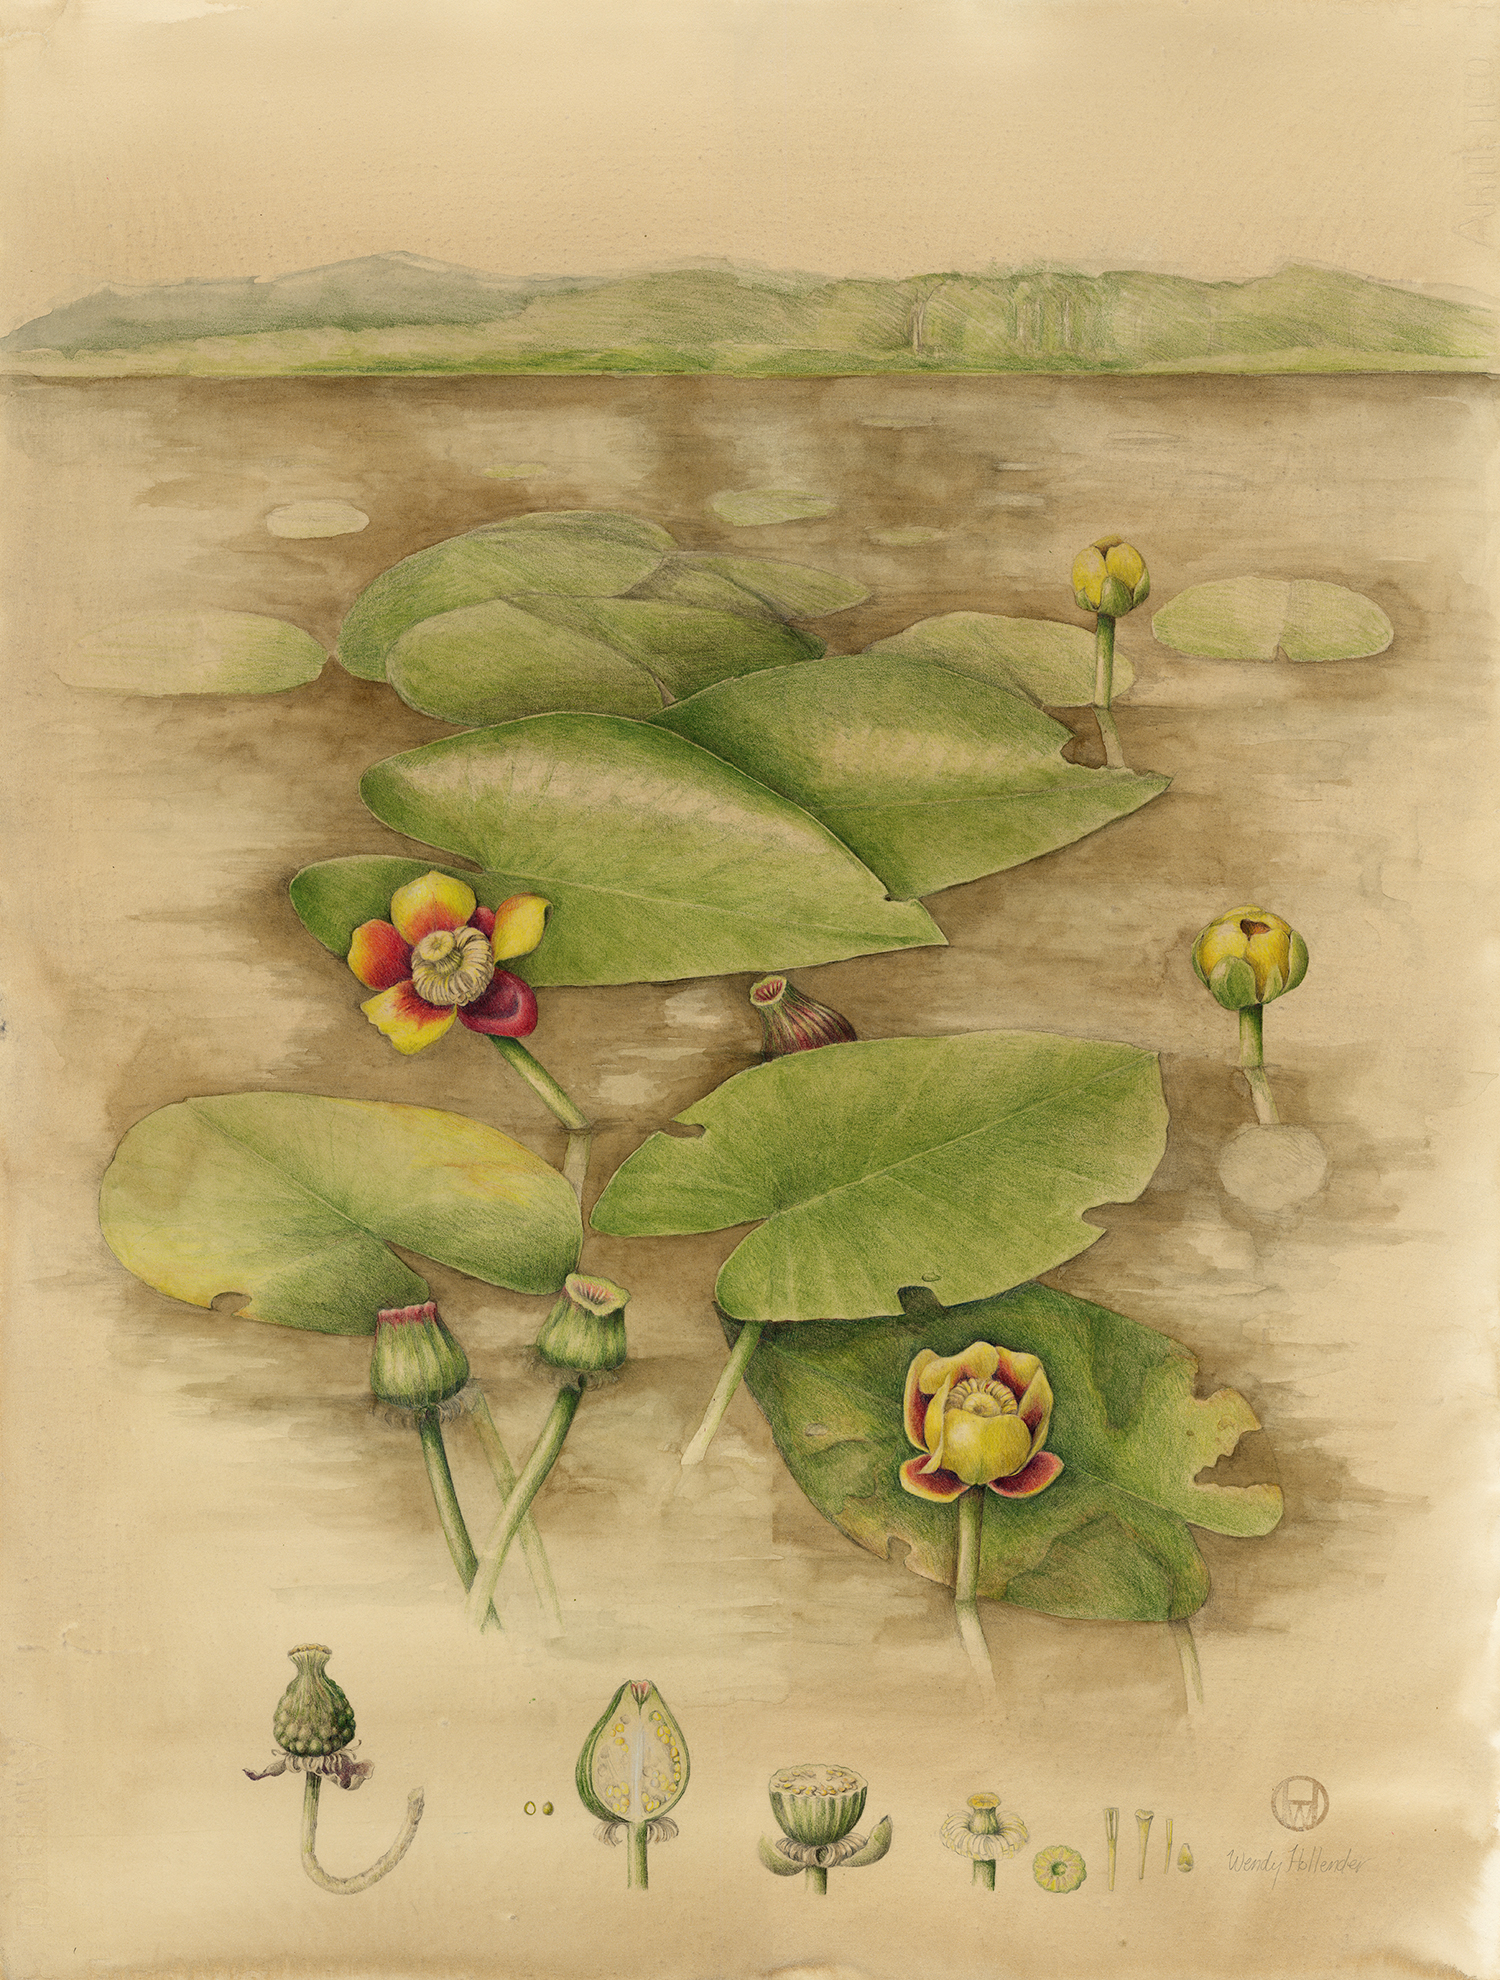 Yellow Water Lily - Nuphar lutea